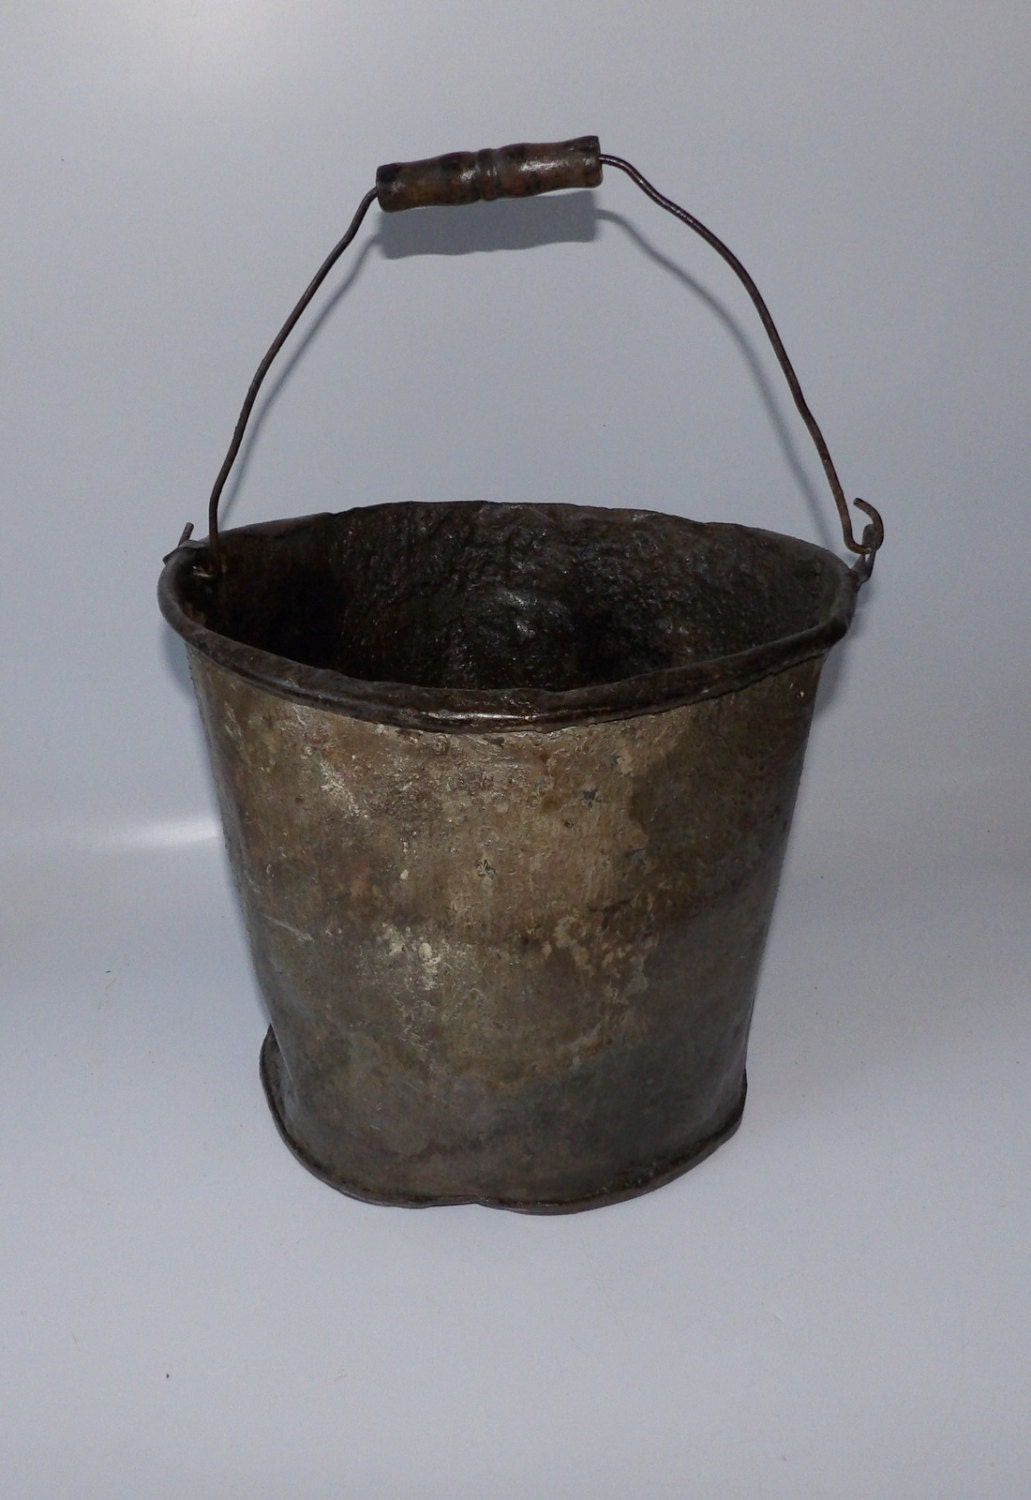 Vintage bucket small crusty rusty decor pail trash can metal for Decorative items from waste